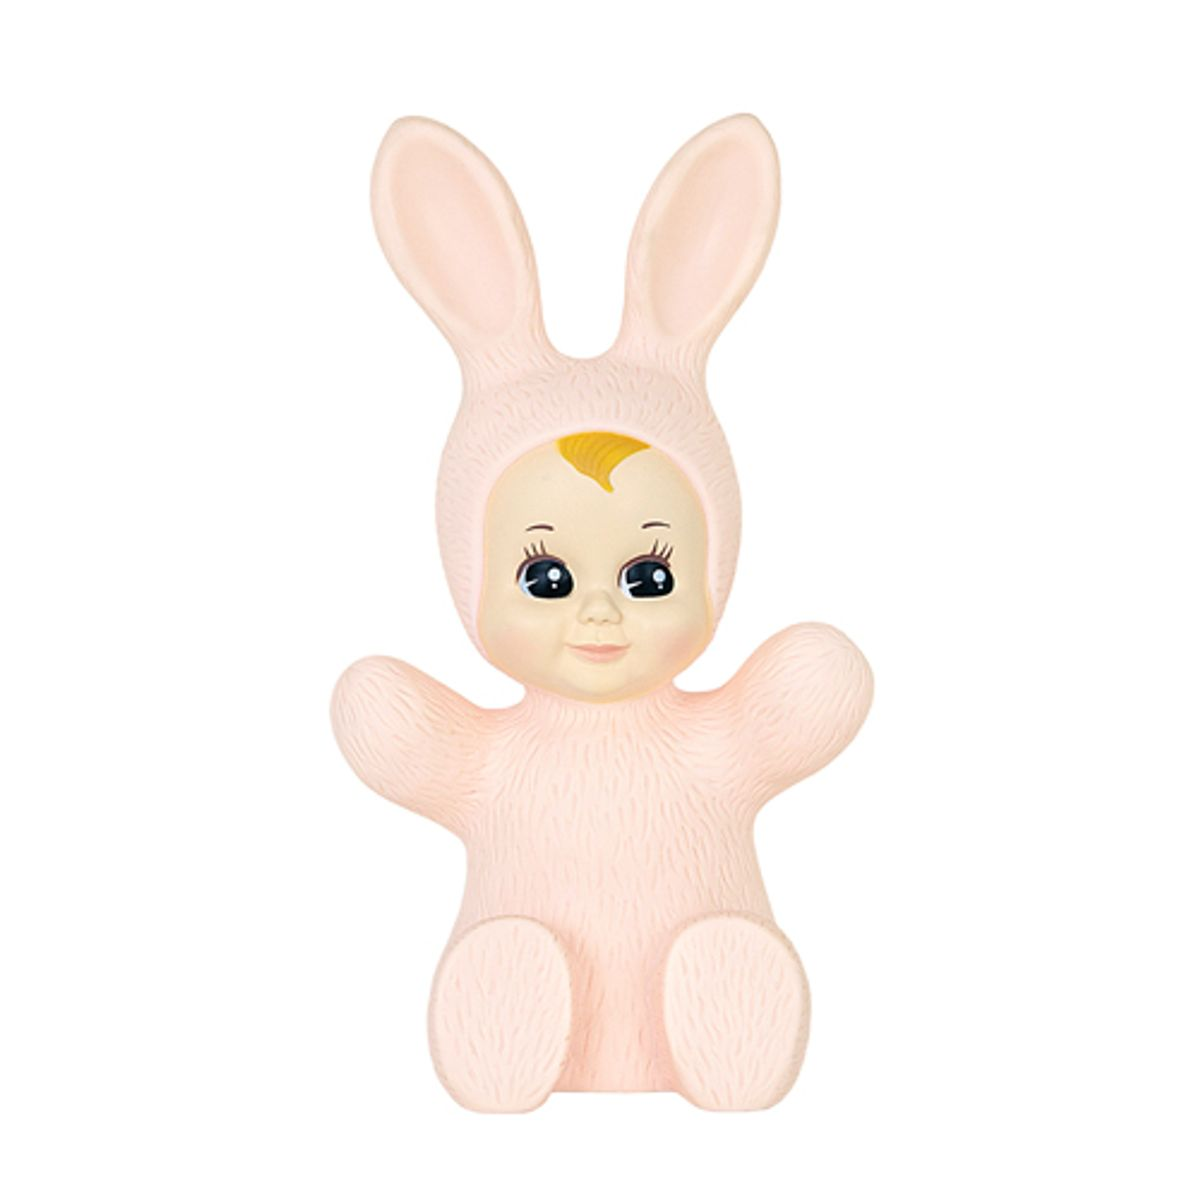 Lampe / veilleuse Bunny en vinyle Goodnight Light - Rose pastel